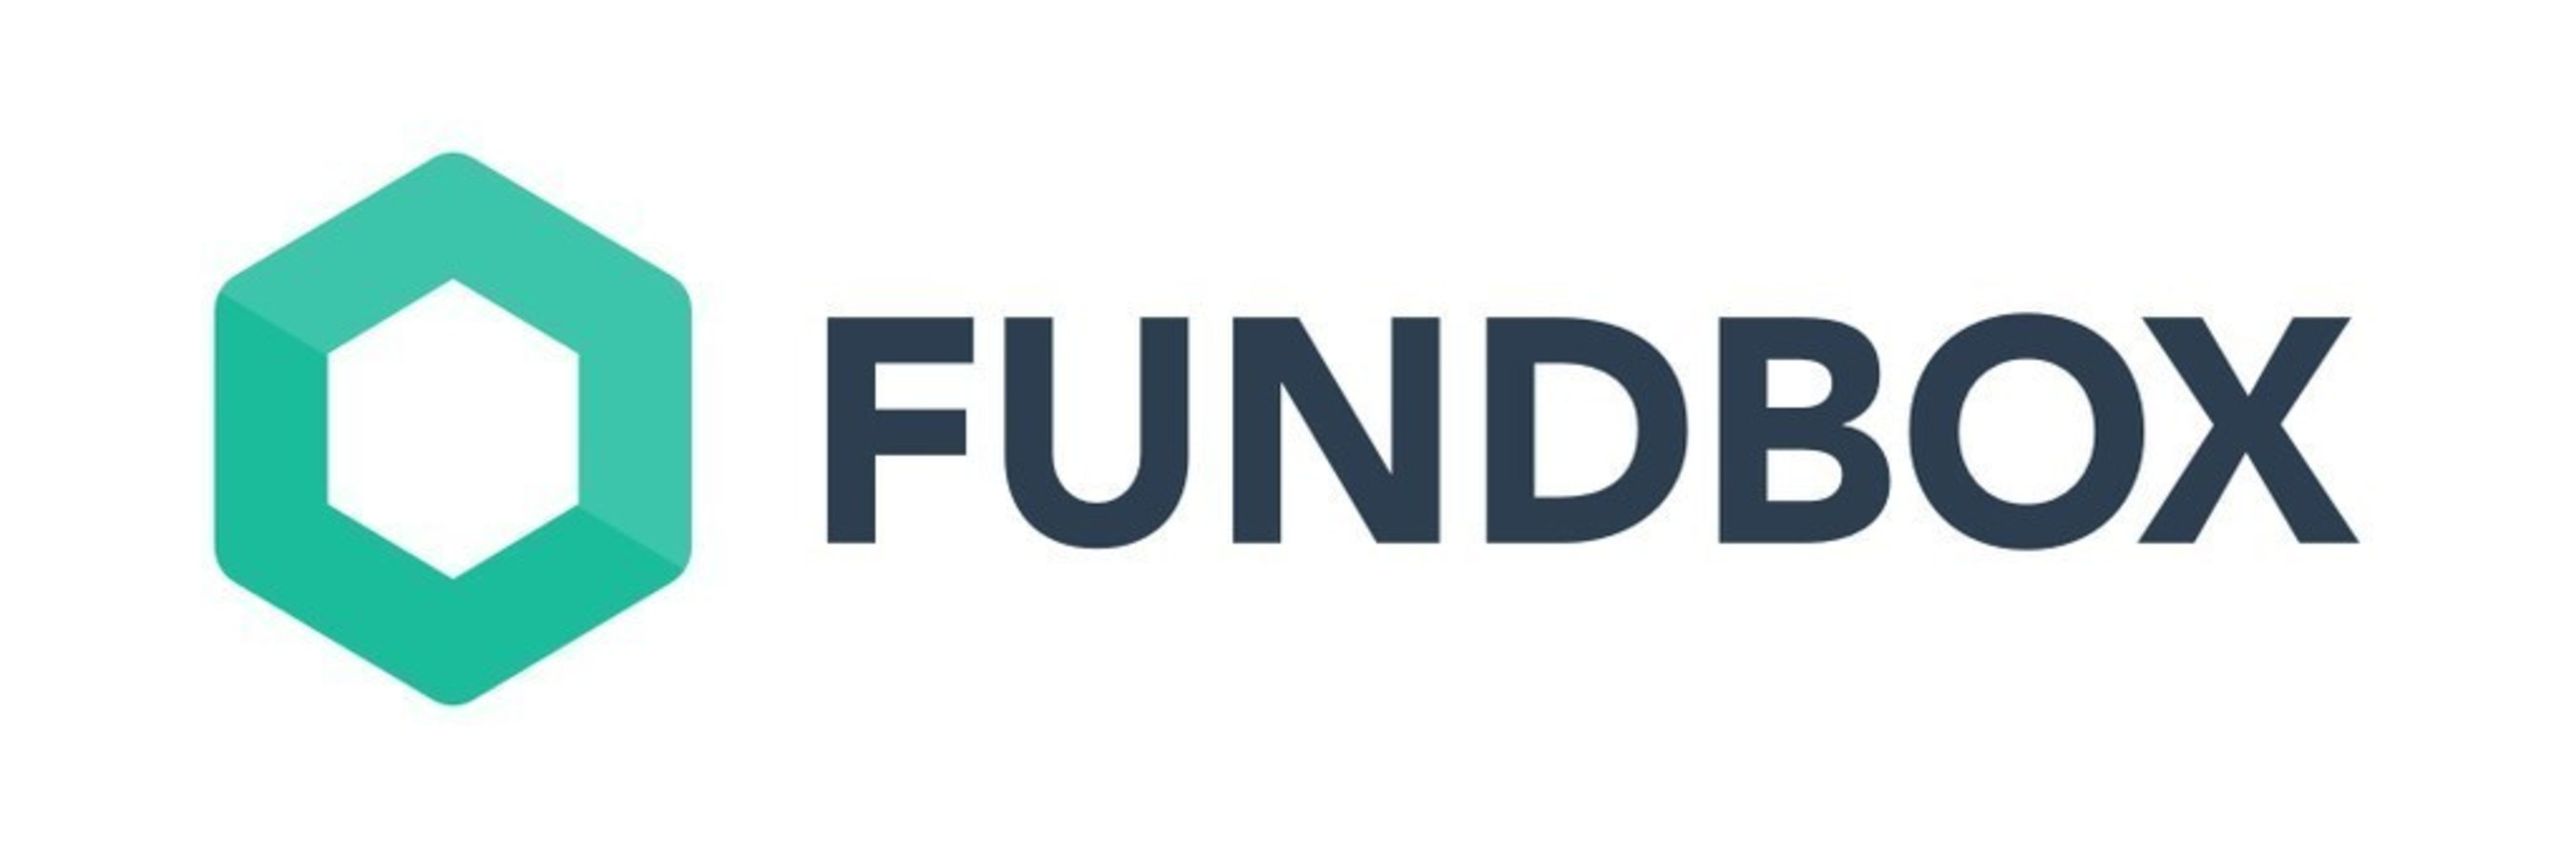 Fundbox launches mobile app